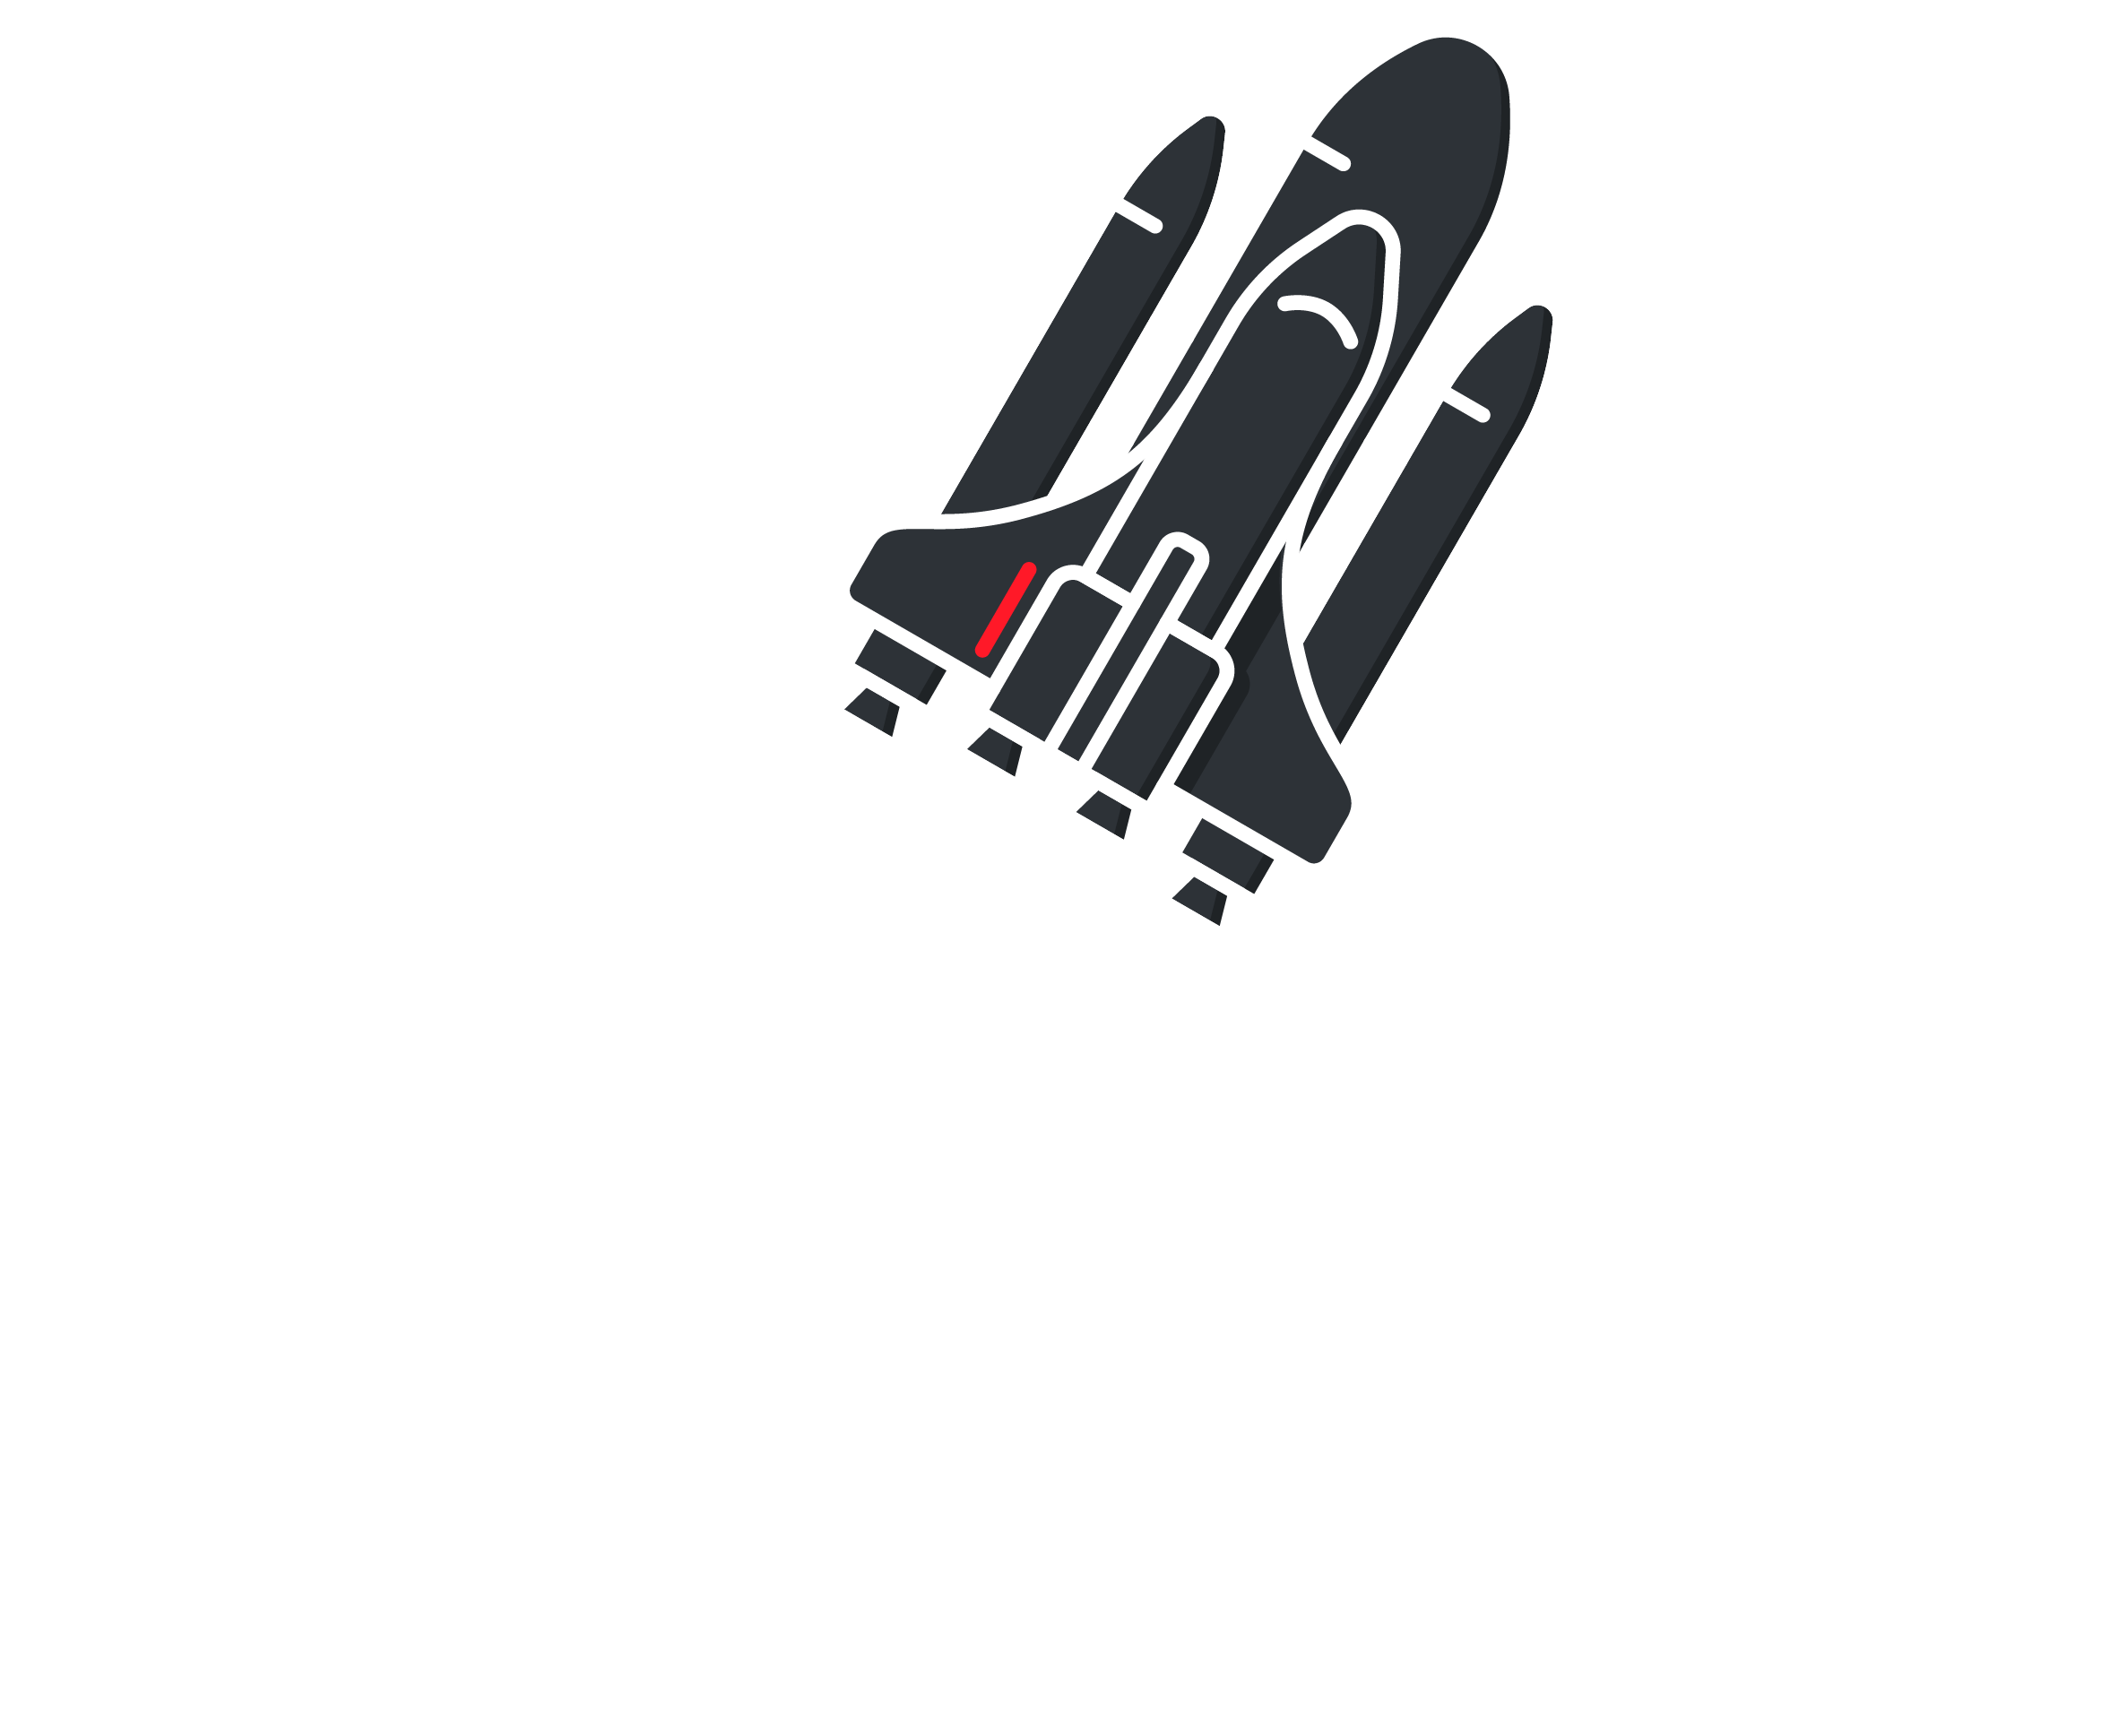 about-mission-illustration_shuttle.png